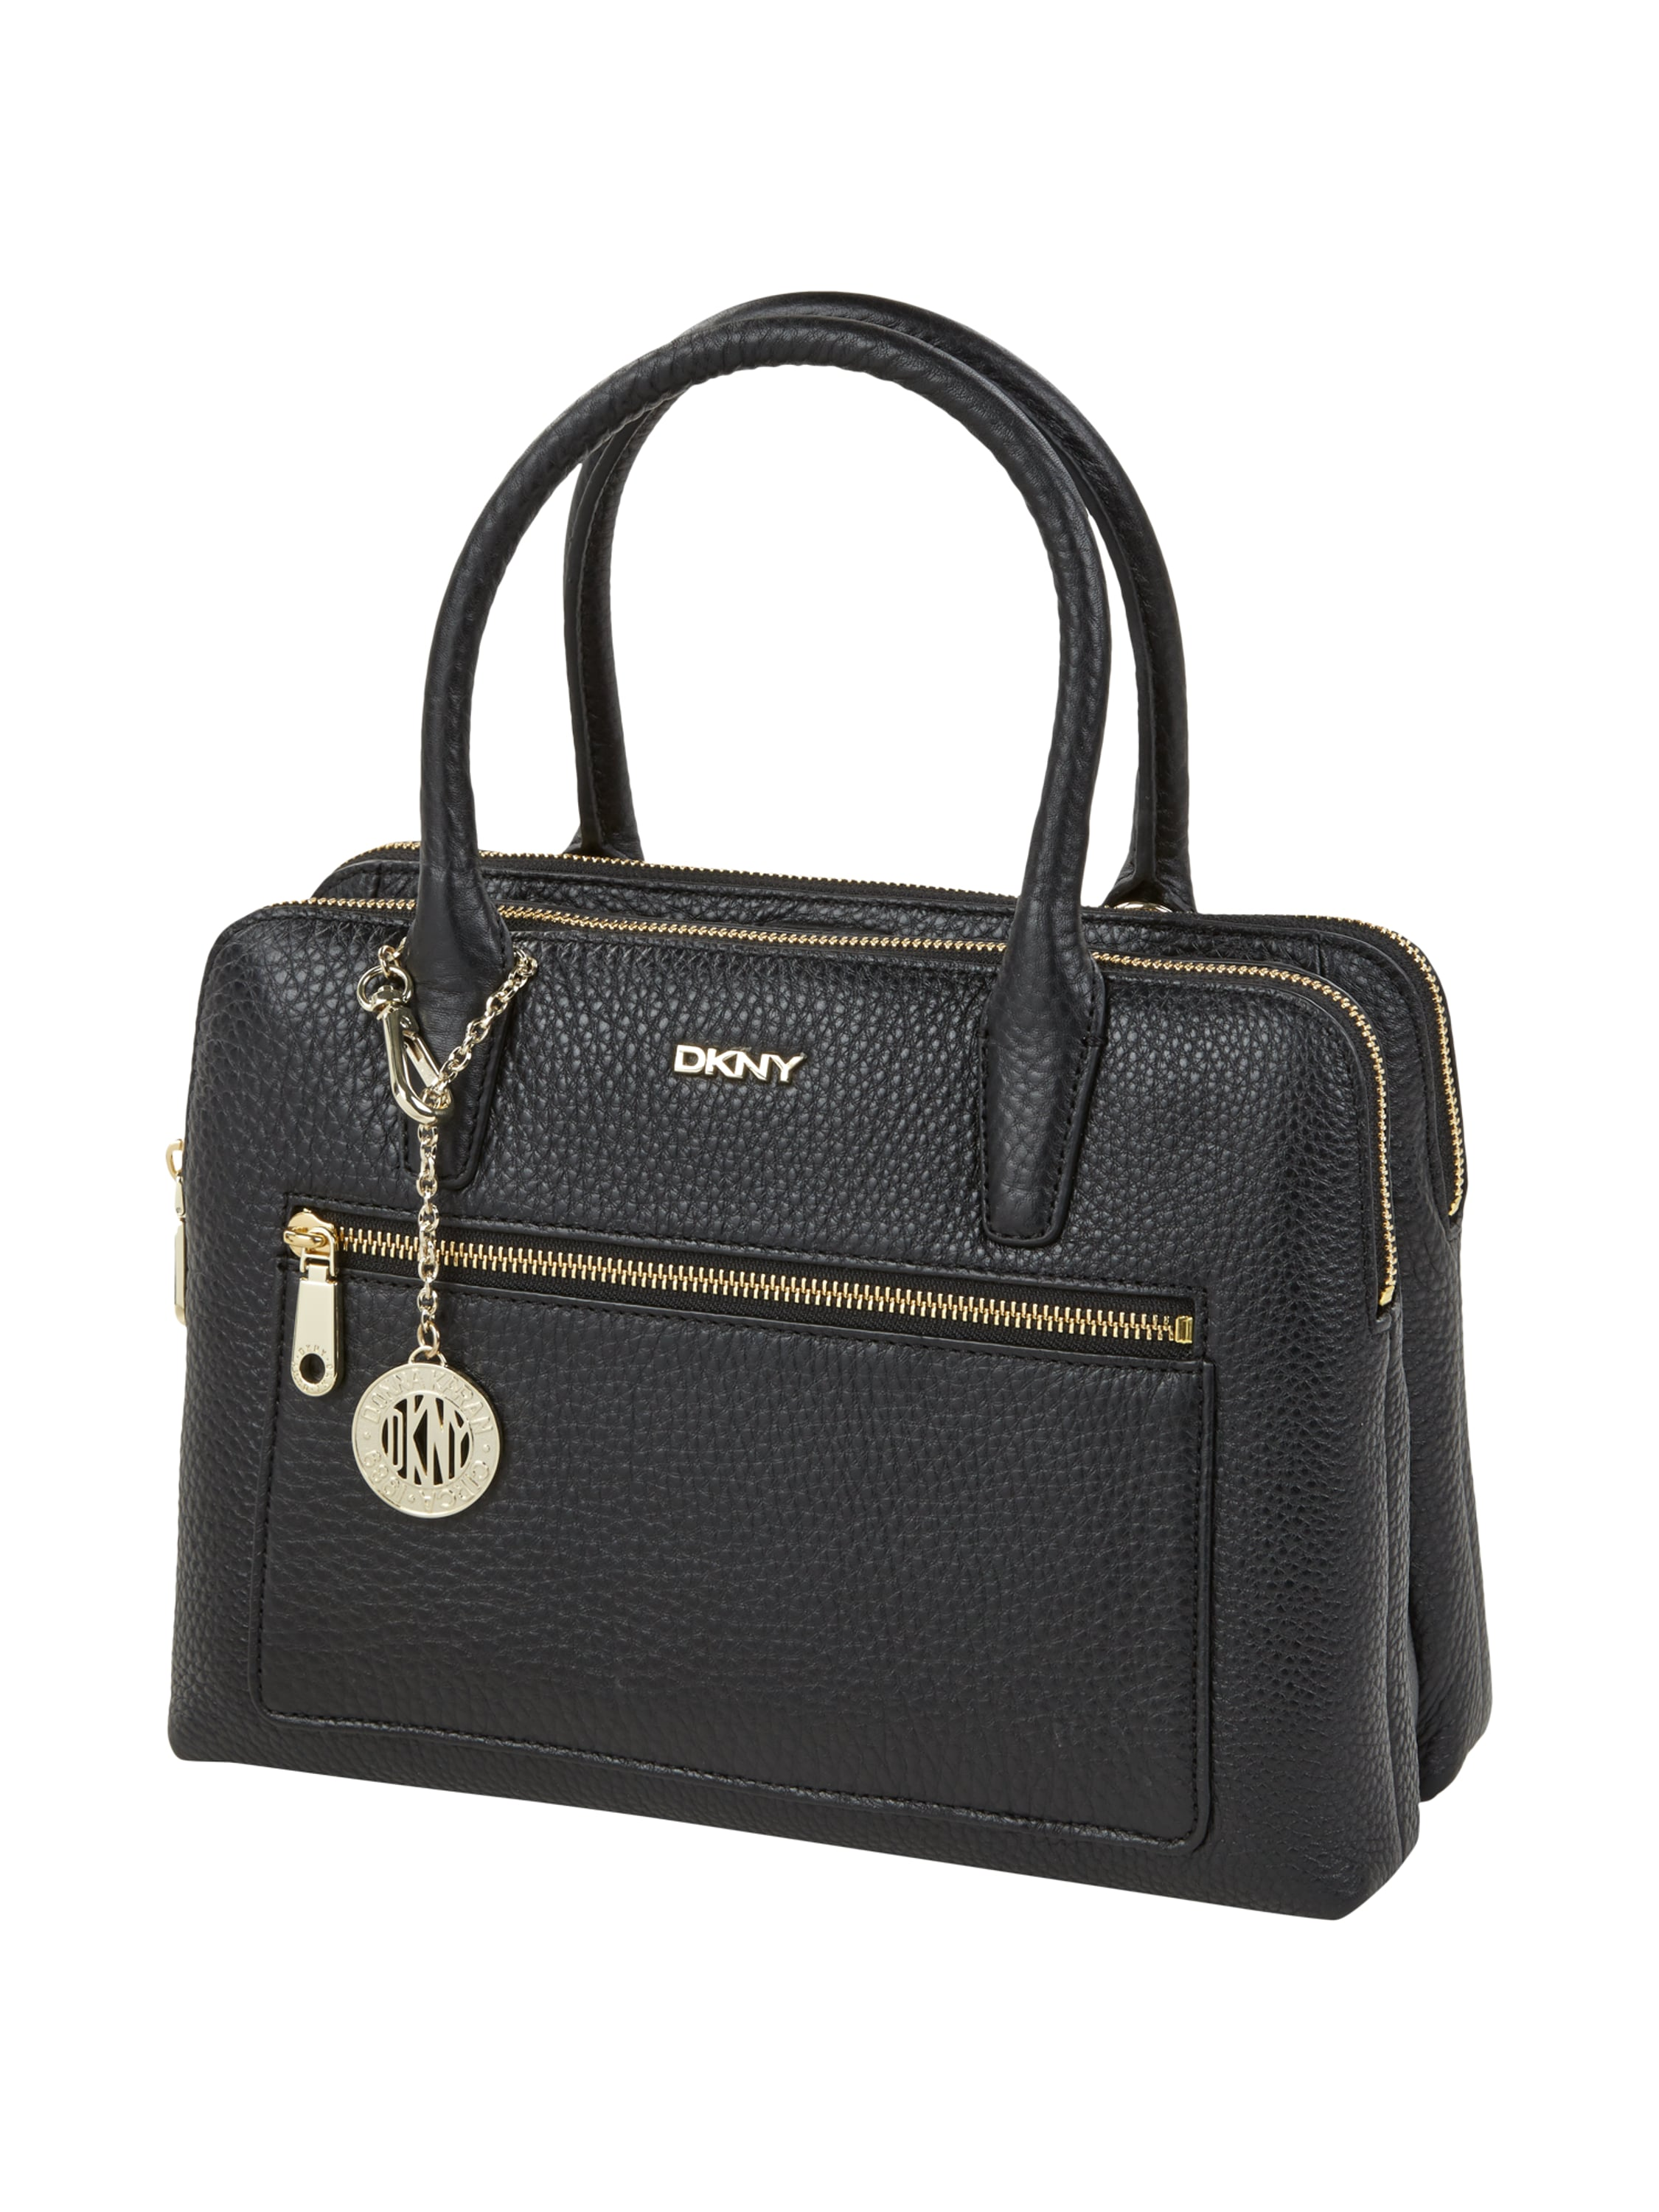 dkny leder handtasche mit vielen f chern in grau schwarz online kaufen 9162463 p c online shop. Black Bedroom Furniture Sets. Home Design Ideas